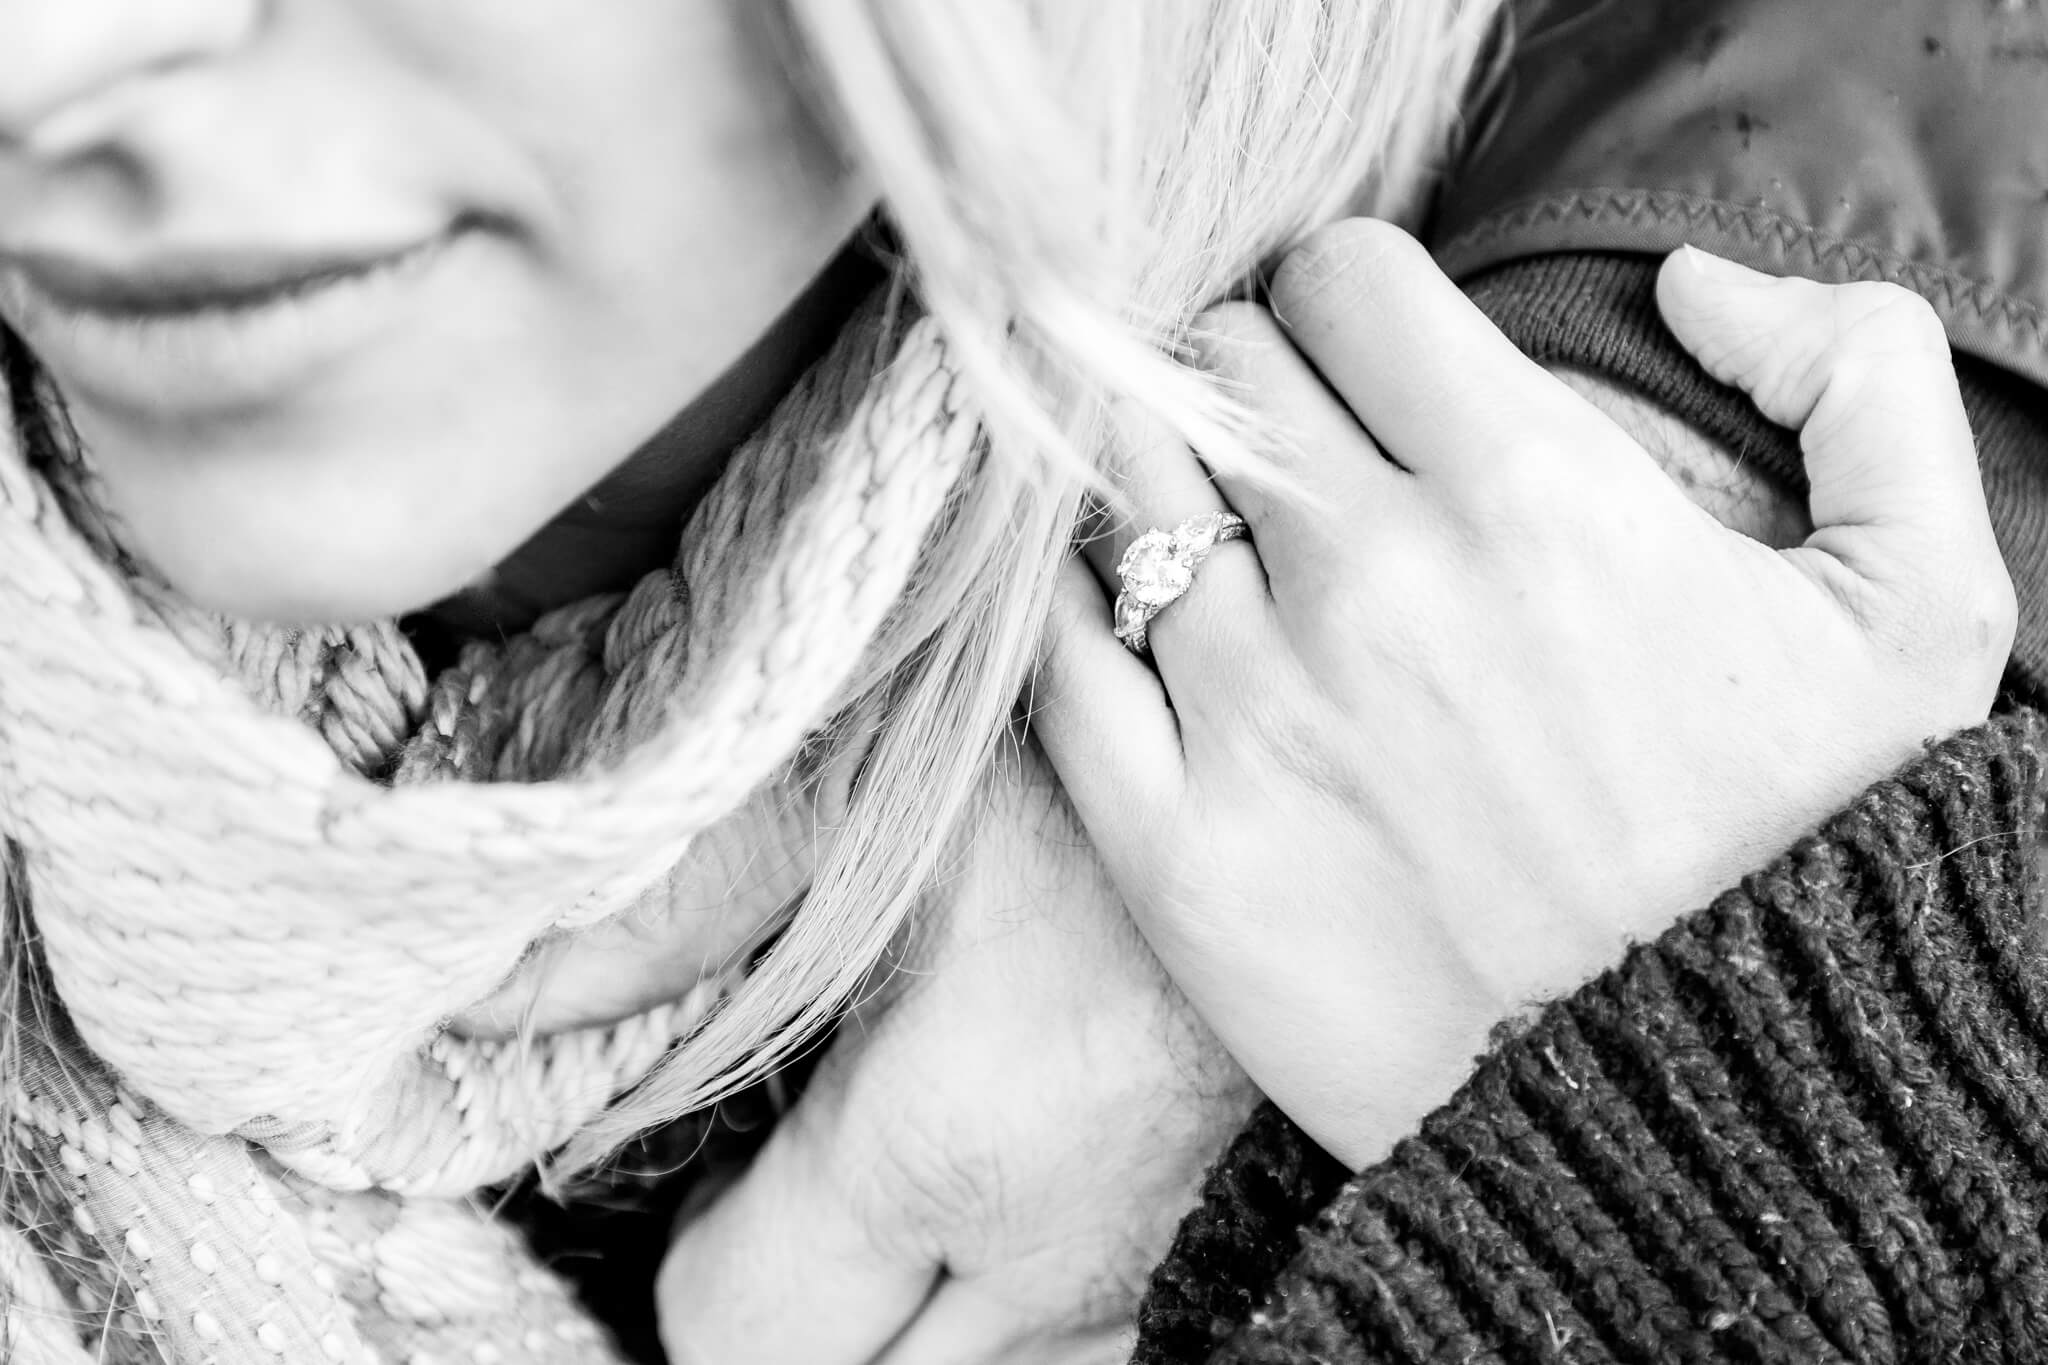 Engagement ring photo taken at The Grove at Hertfordshire by Natalie Chiverton Photography